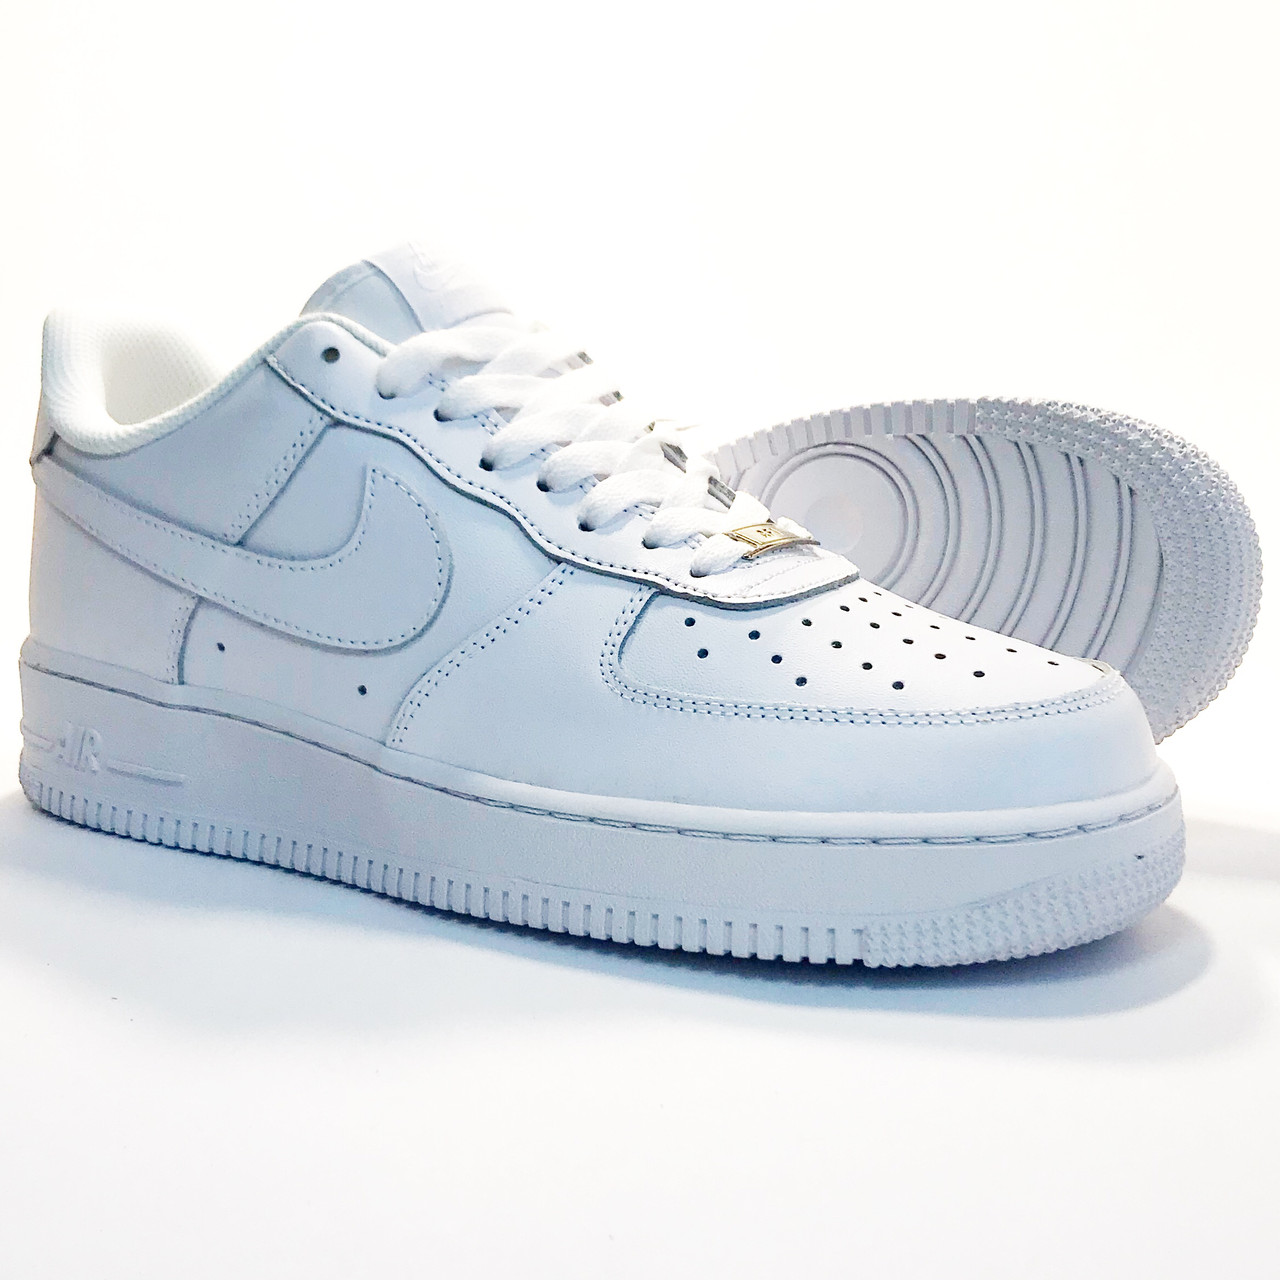 offer discounts running shoes order online Мужские Кроссовки Nike Air Force 1 LOW 44 - Bigl.ua